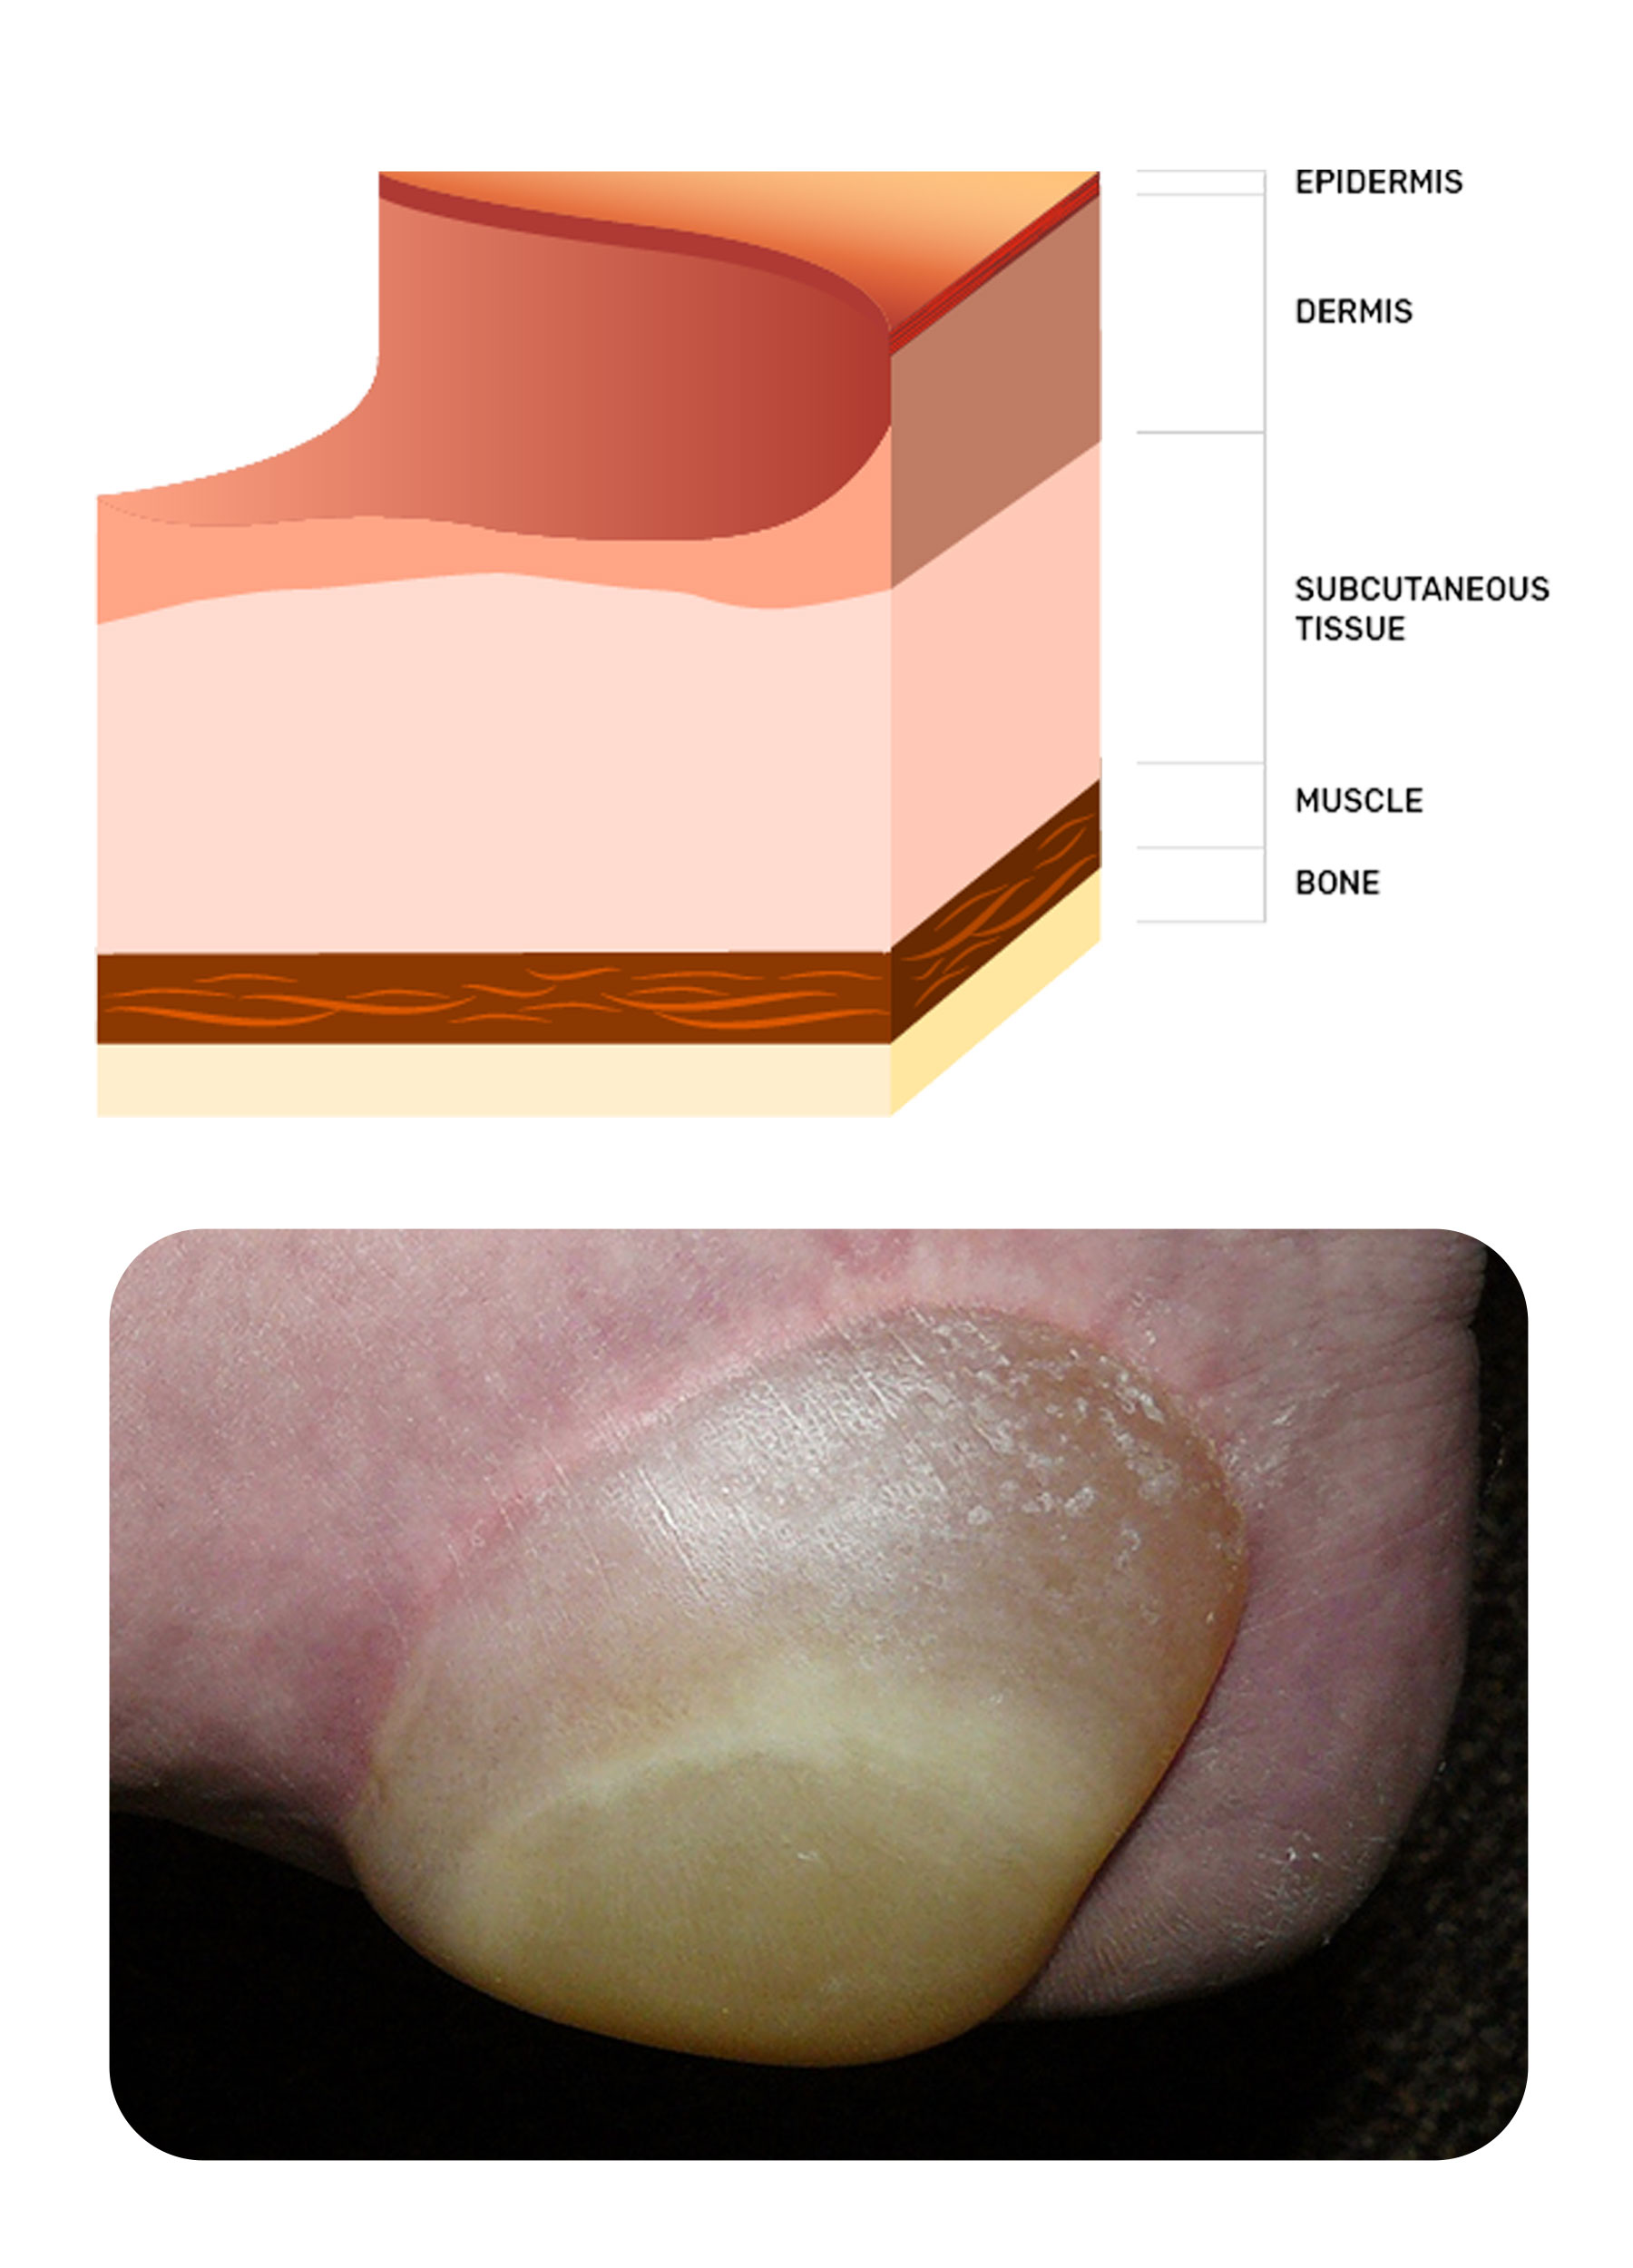 photo of a stage two pressure injury